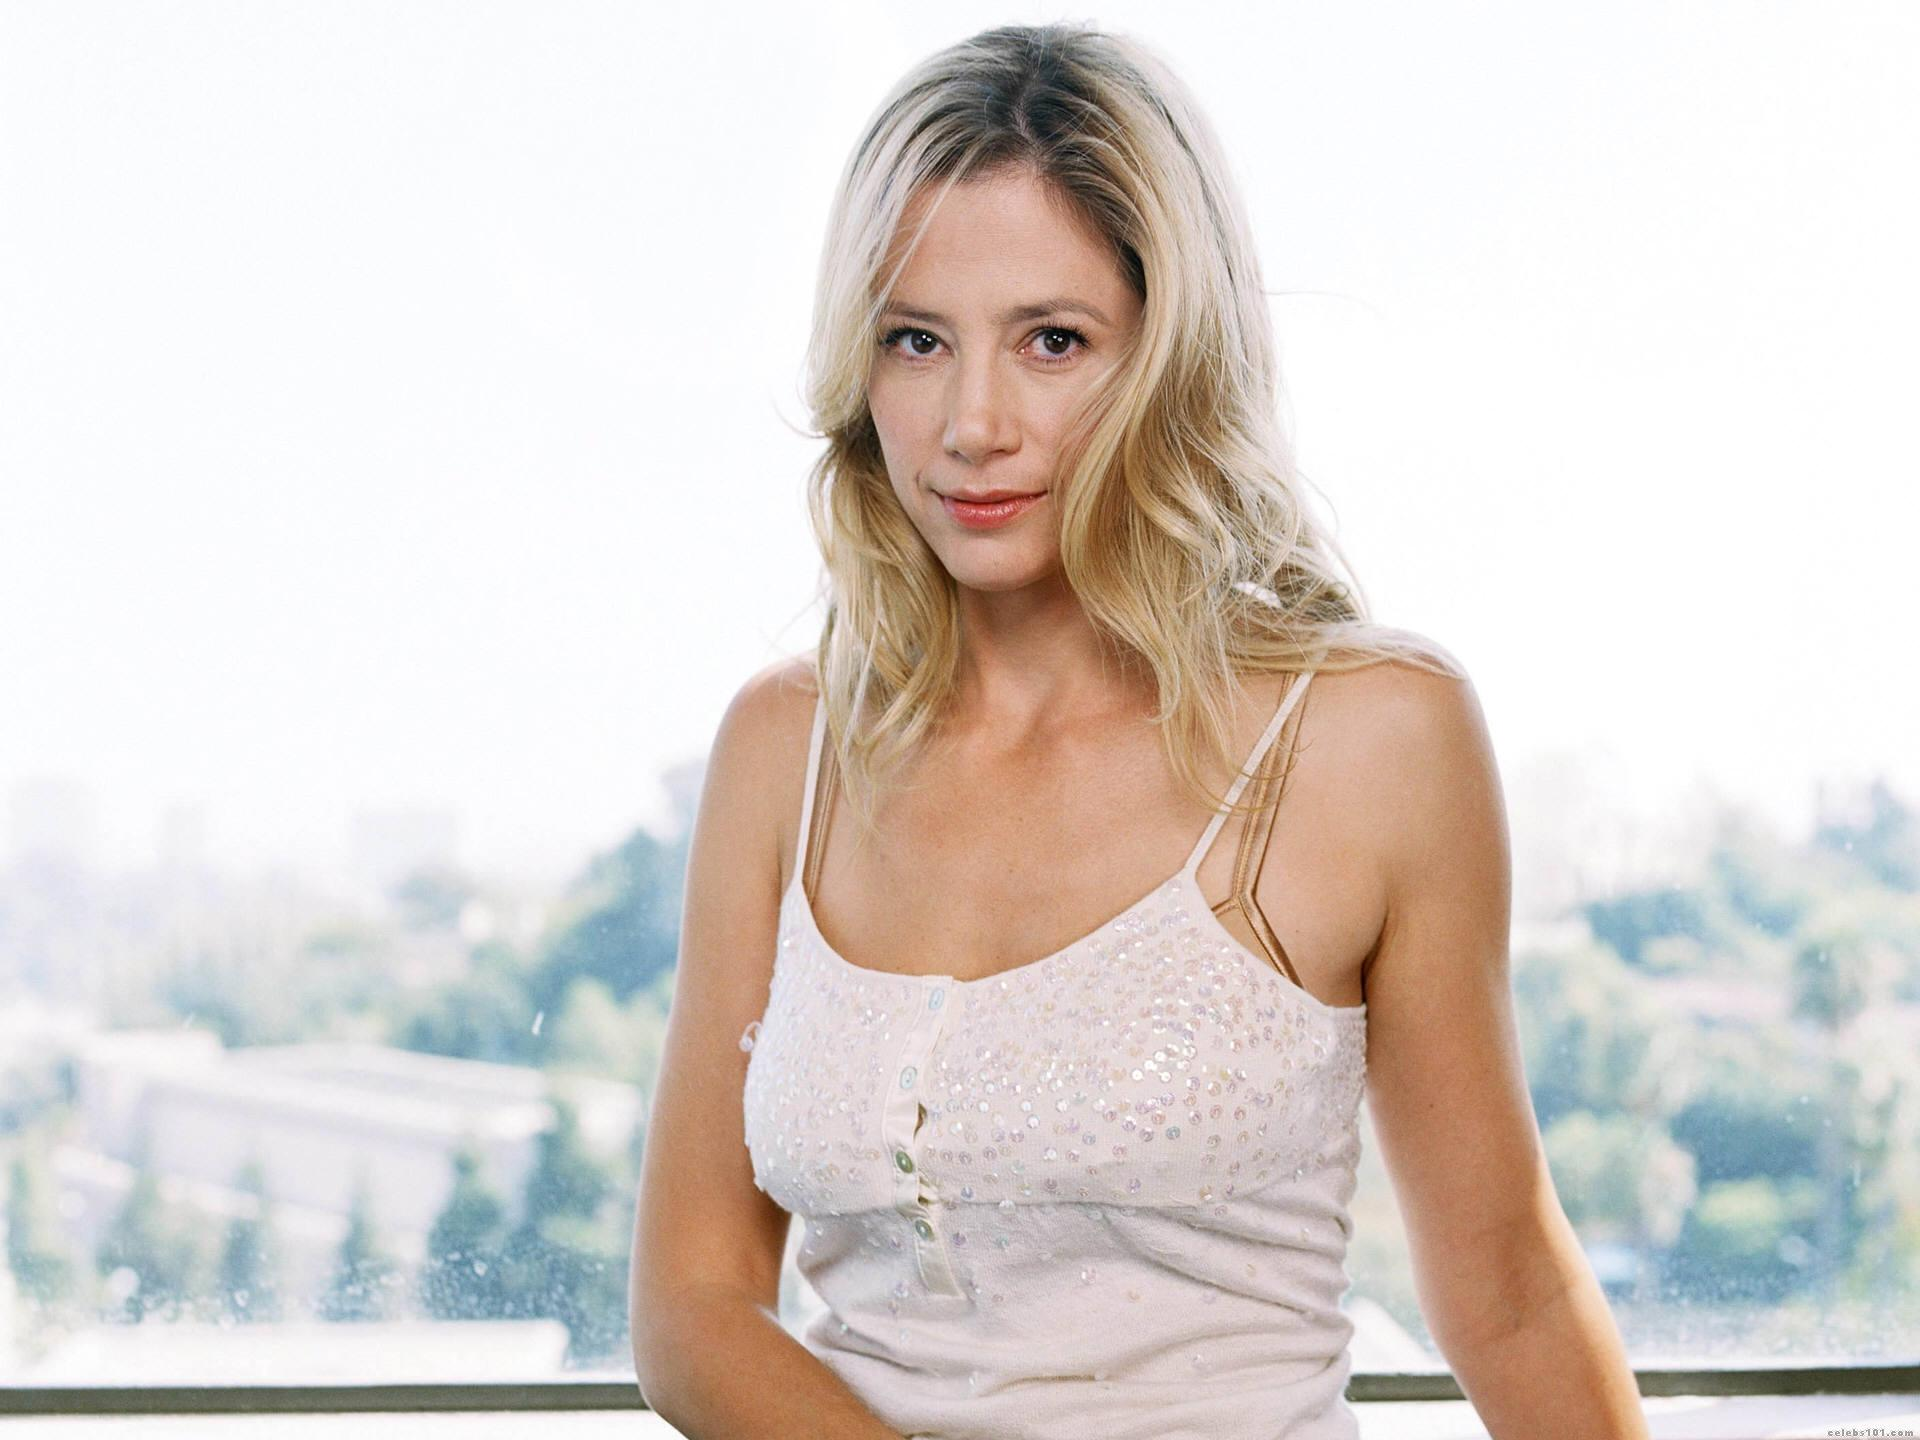 Actress Mira Sorvino - age: 49